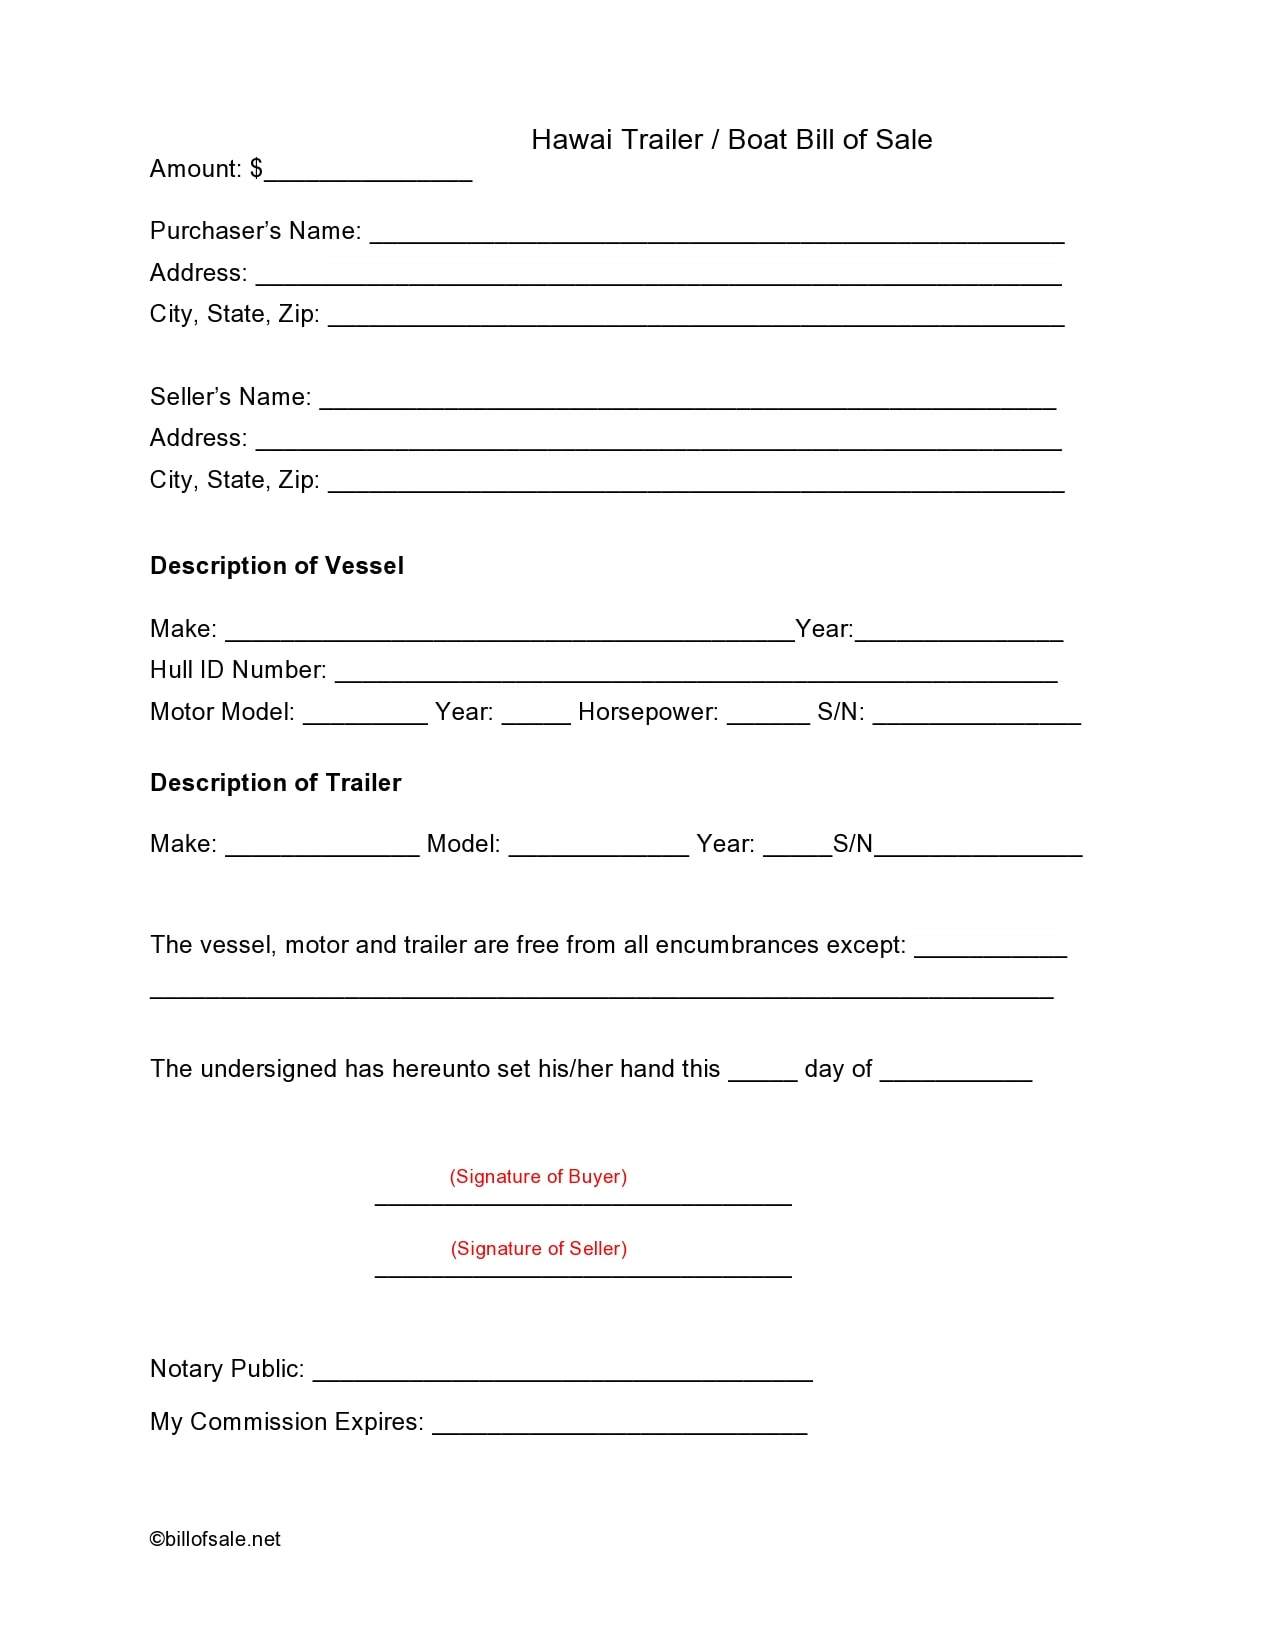 bill of sale for trailer 07